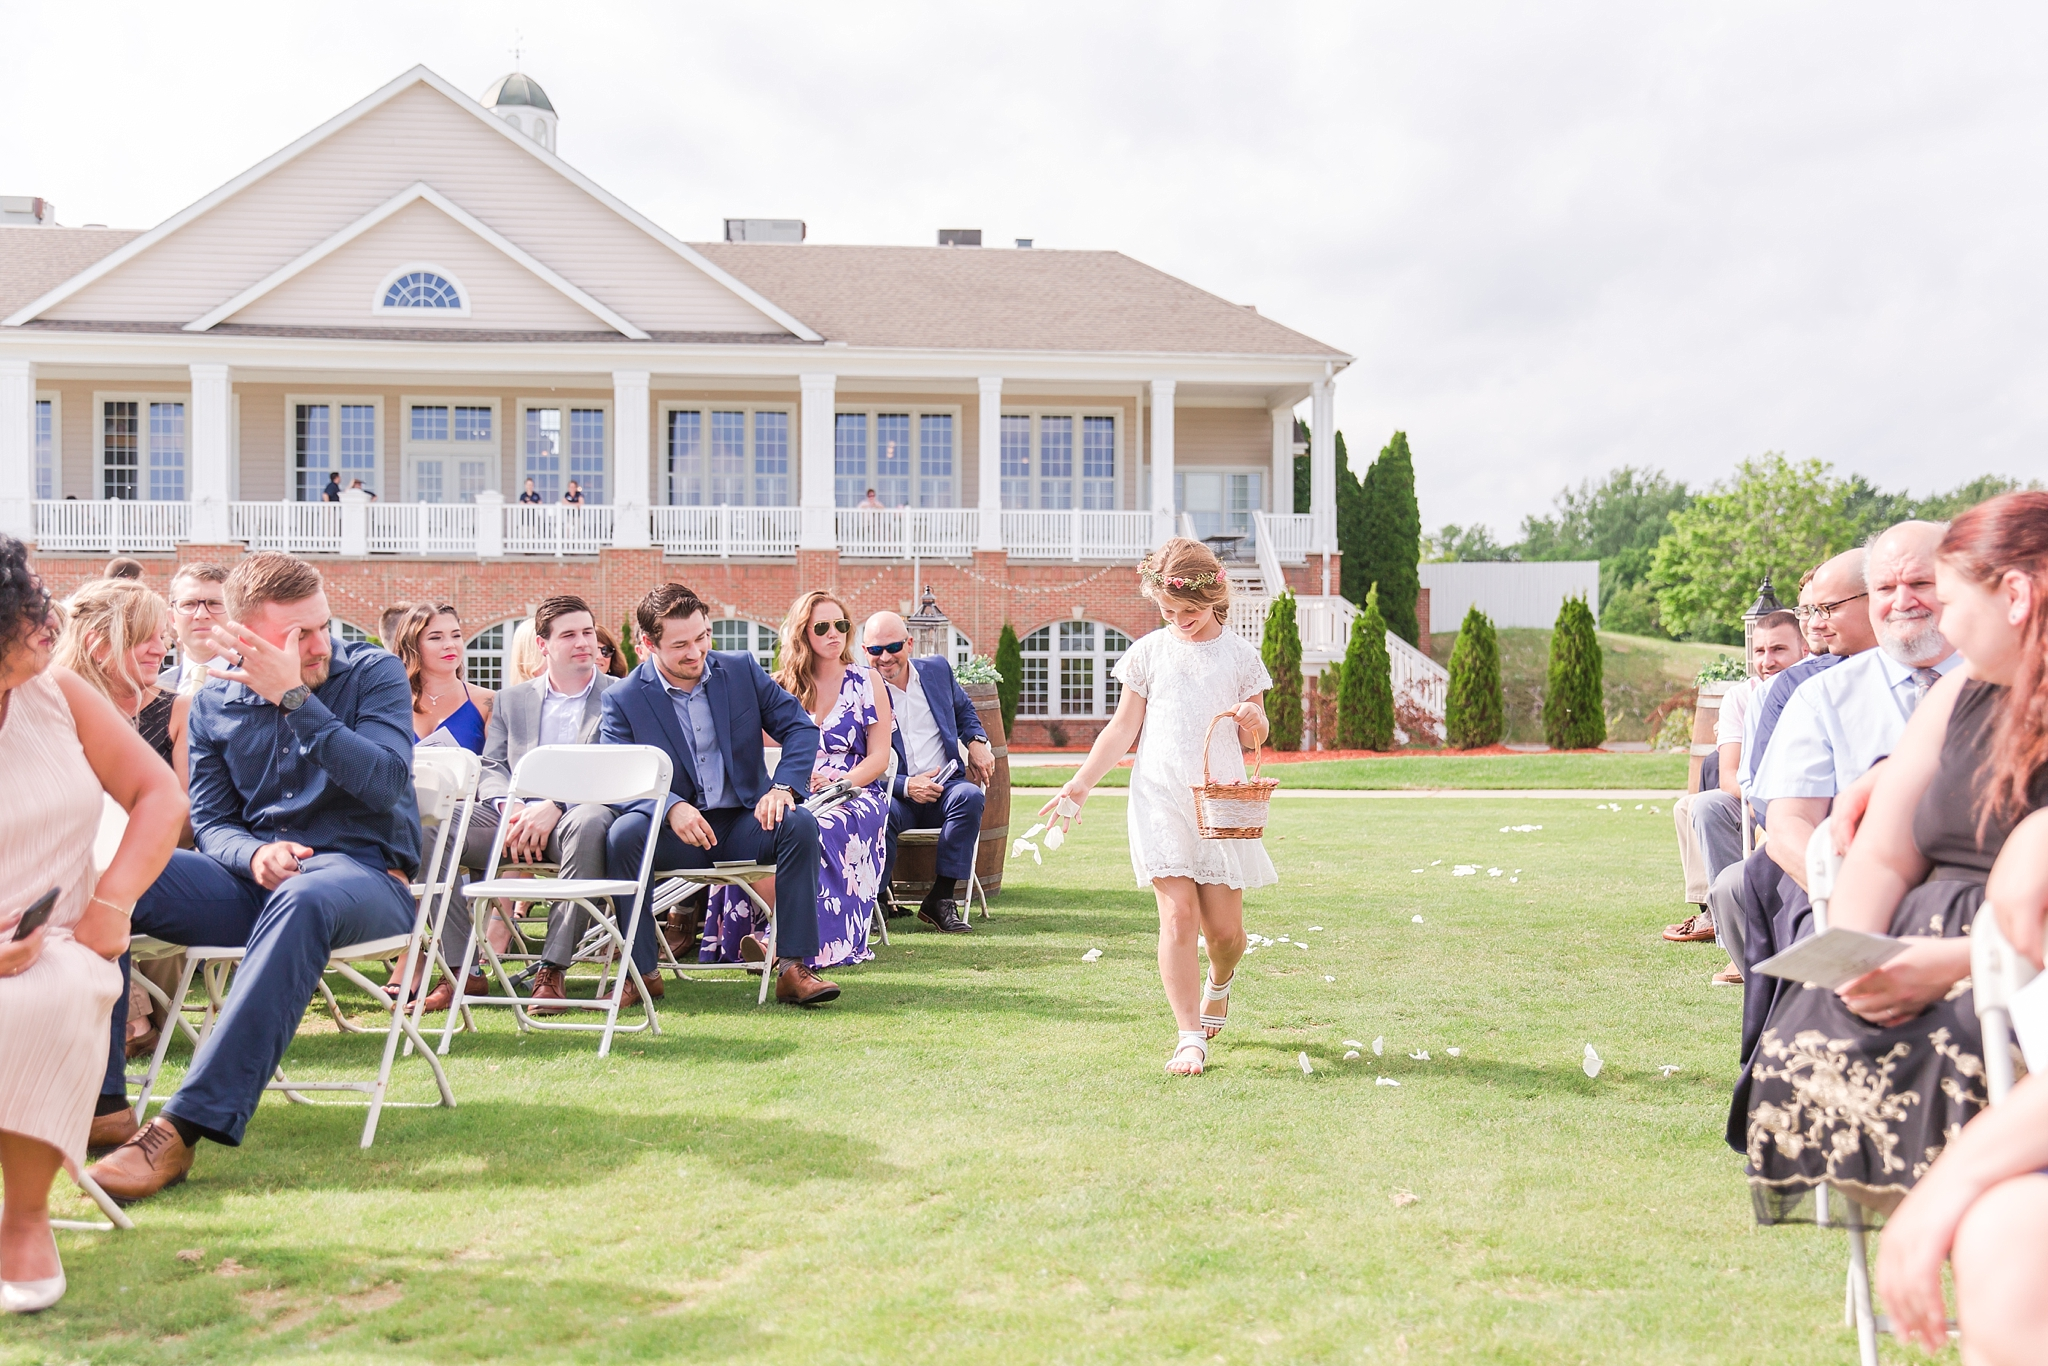 candid-timeless-wedding-photos-at-the-captains-club-in-grand-blanc-michigan-by-courtney-carolyn-photography_0030.jpg